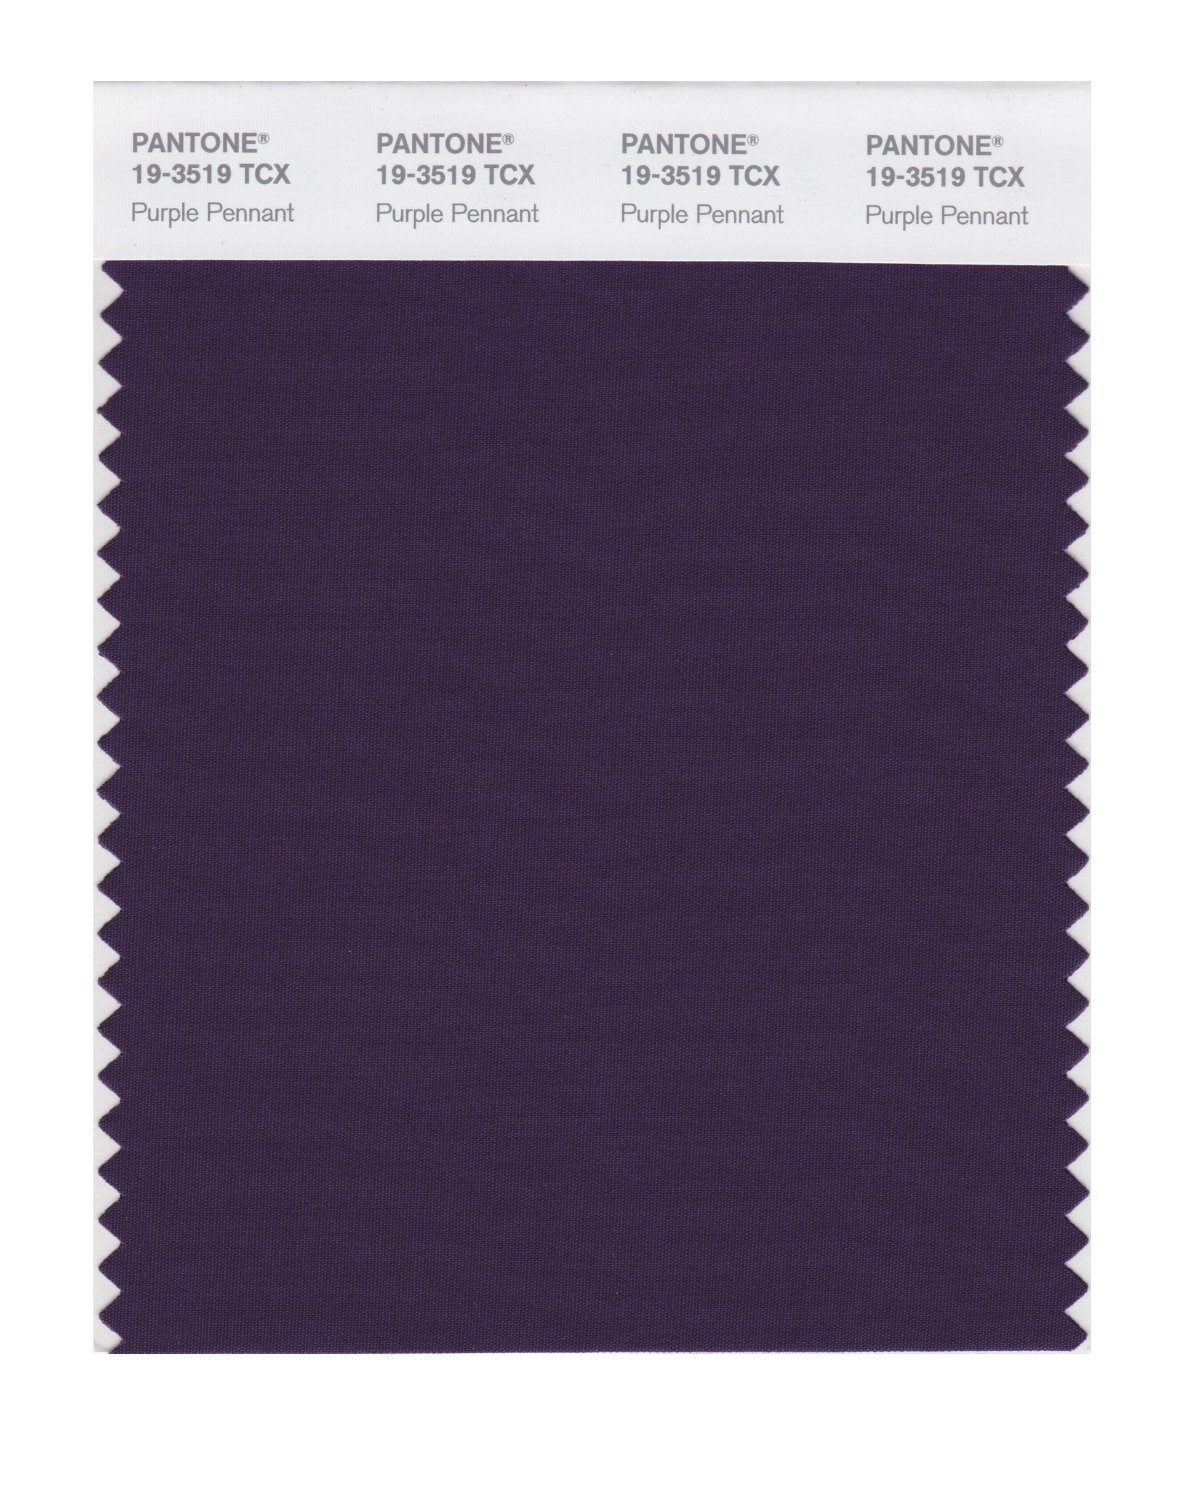 Pantone Smart Swatch 19-3519 Purple Pennant